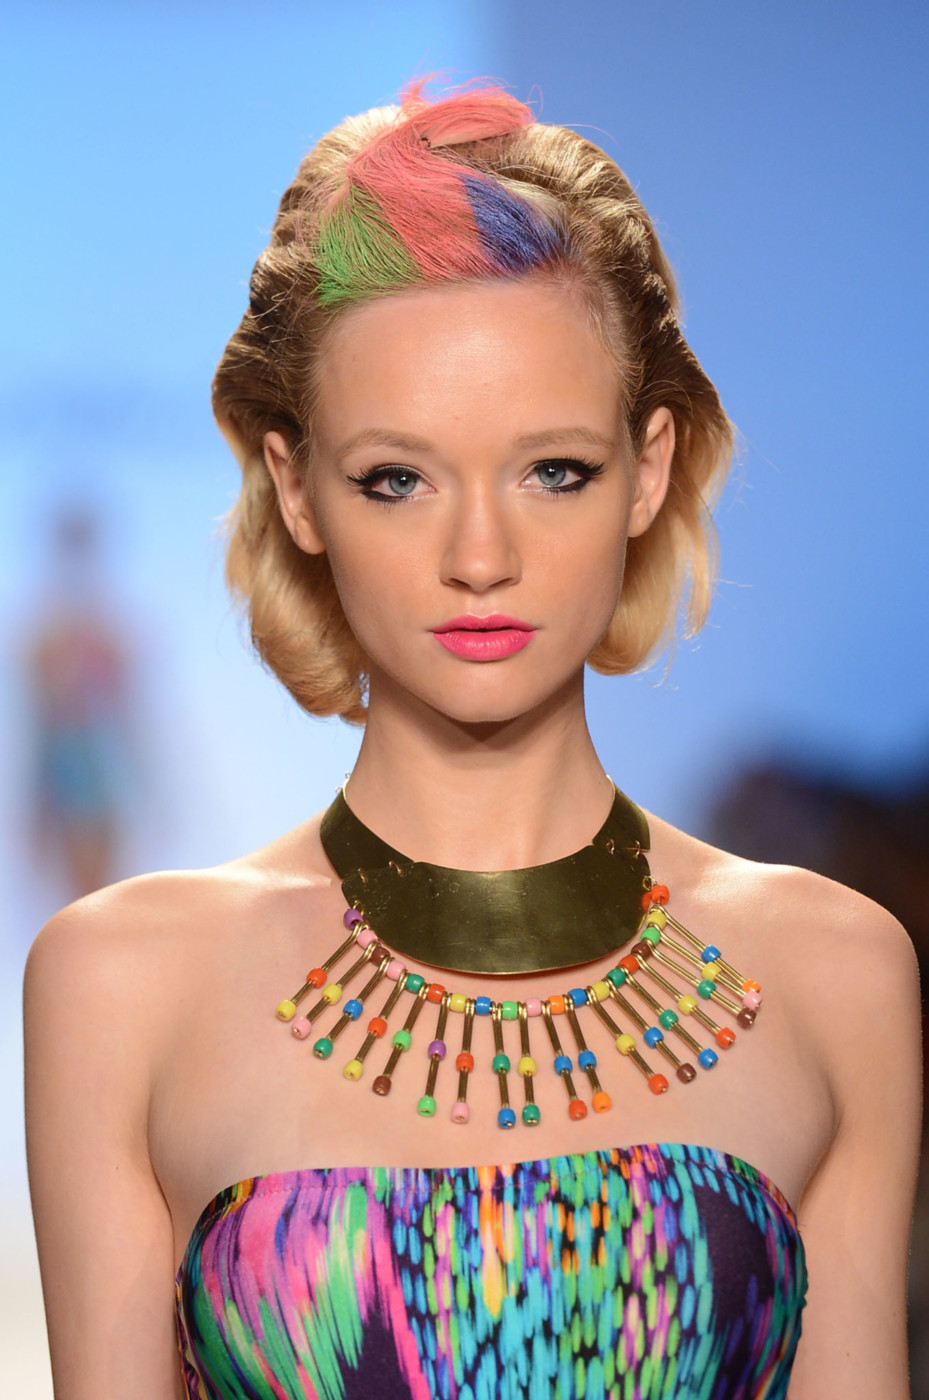 Love: MAKE UP FOR EVER at Mercedes Benz Fashion Week Swim